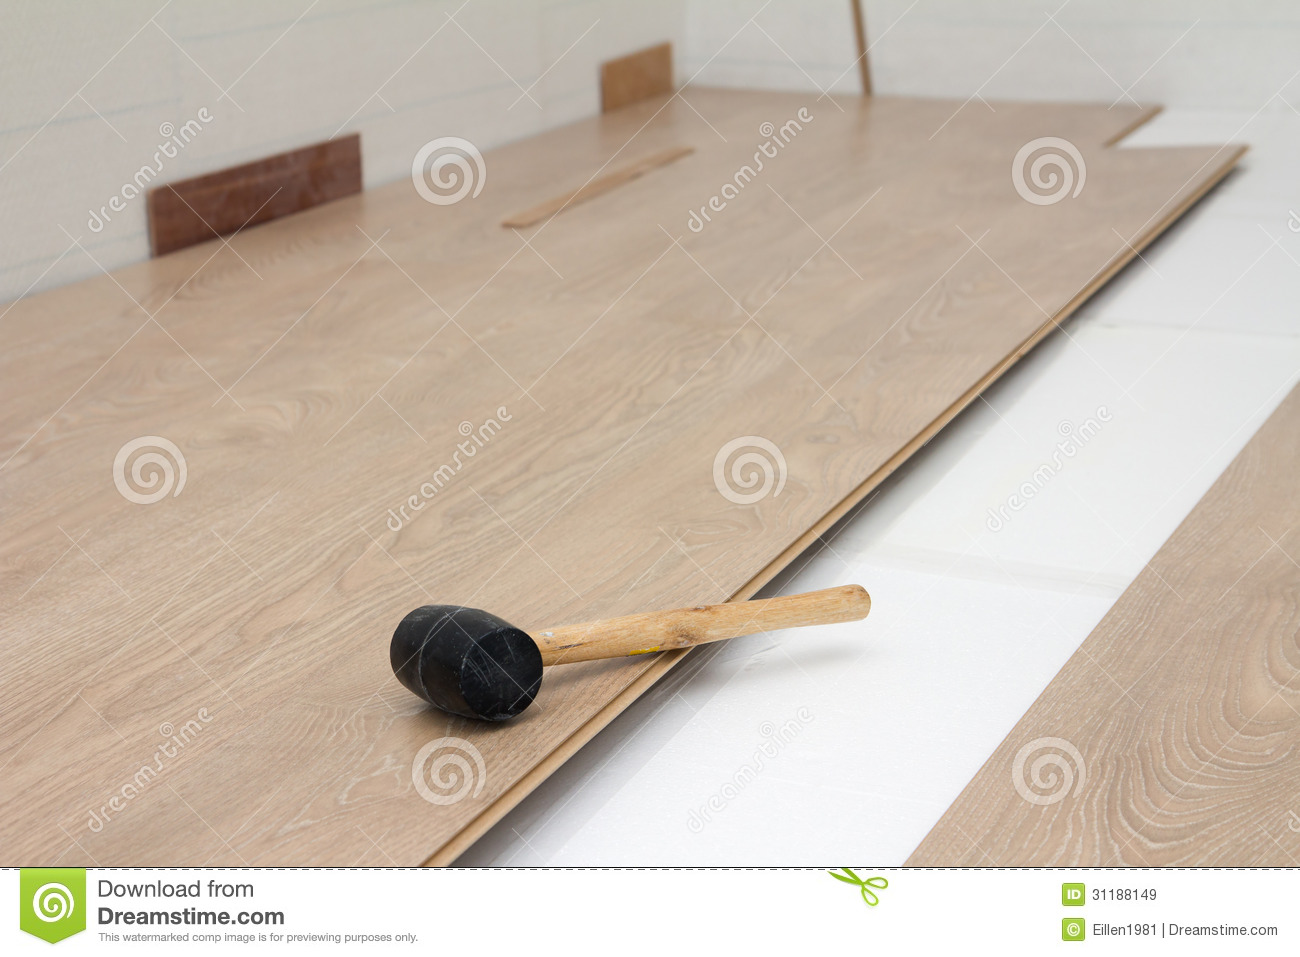 hammer on new laminate floor stock image - image of construction